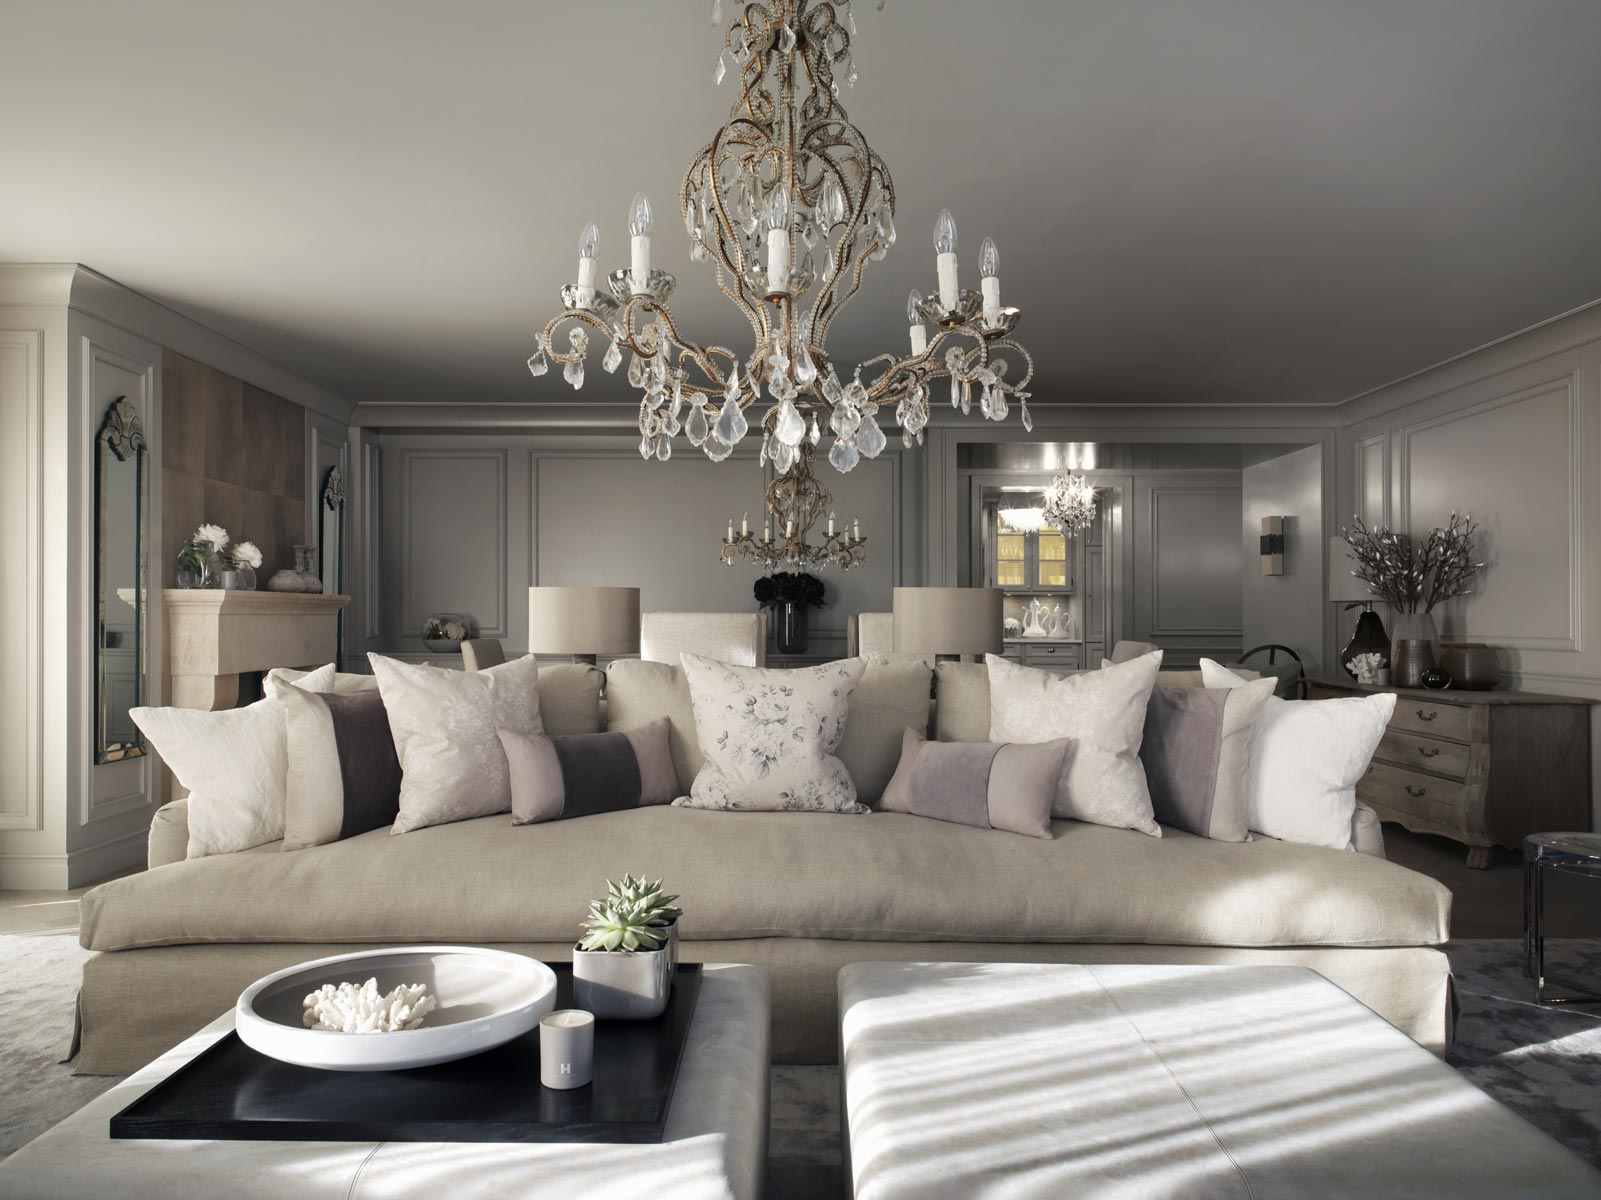 Top 10 kelly hoppen design ideas for Best luxury interior designers